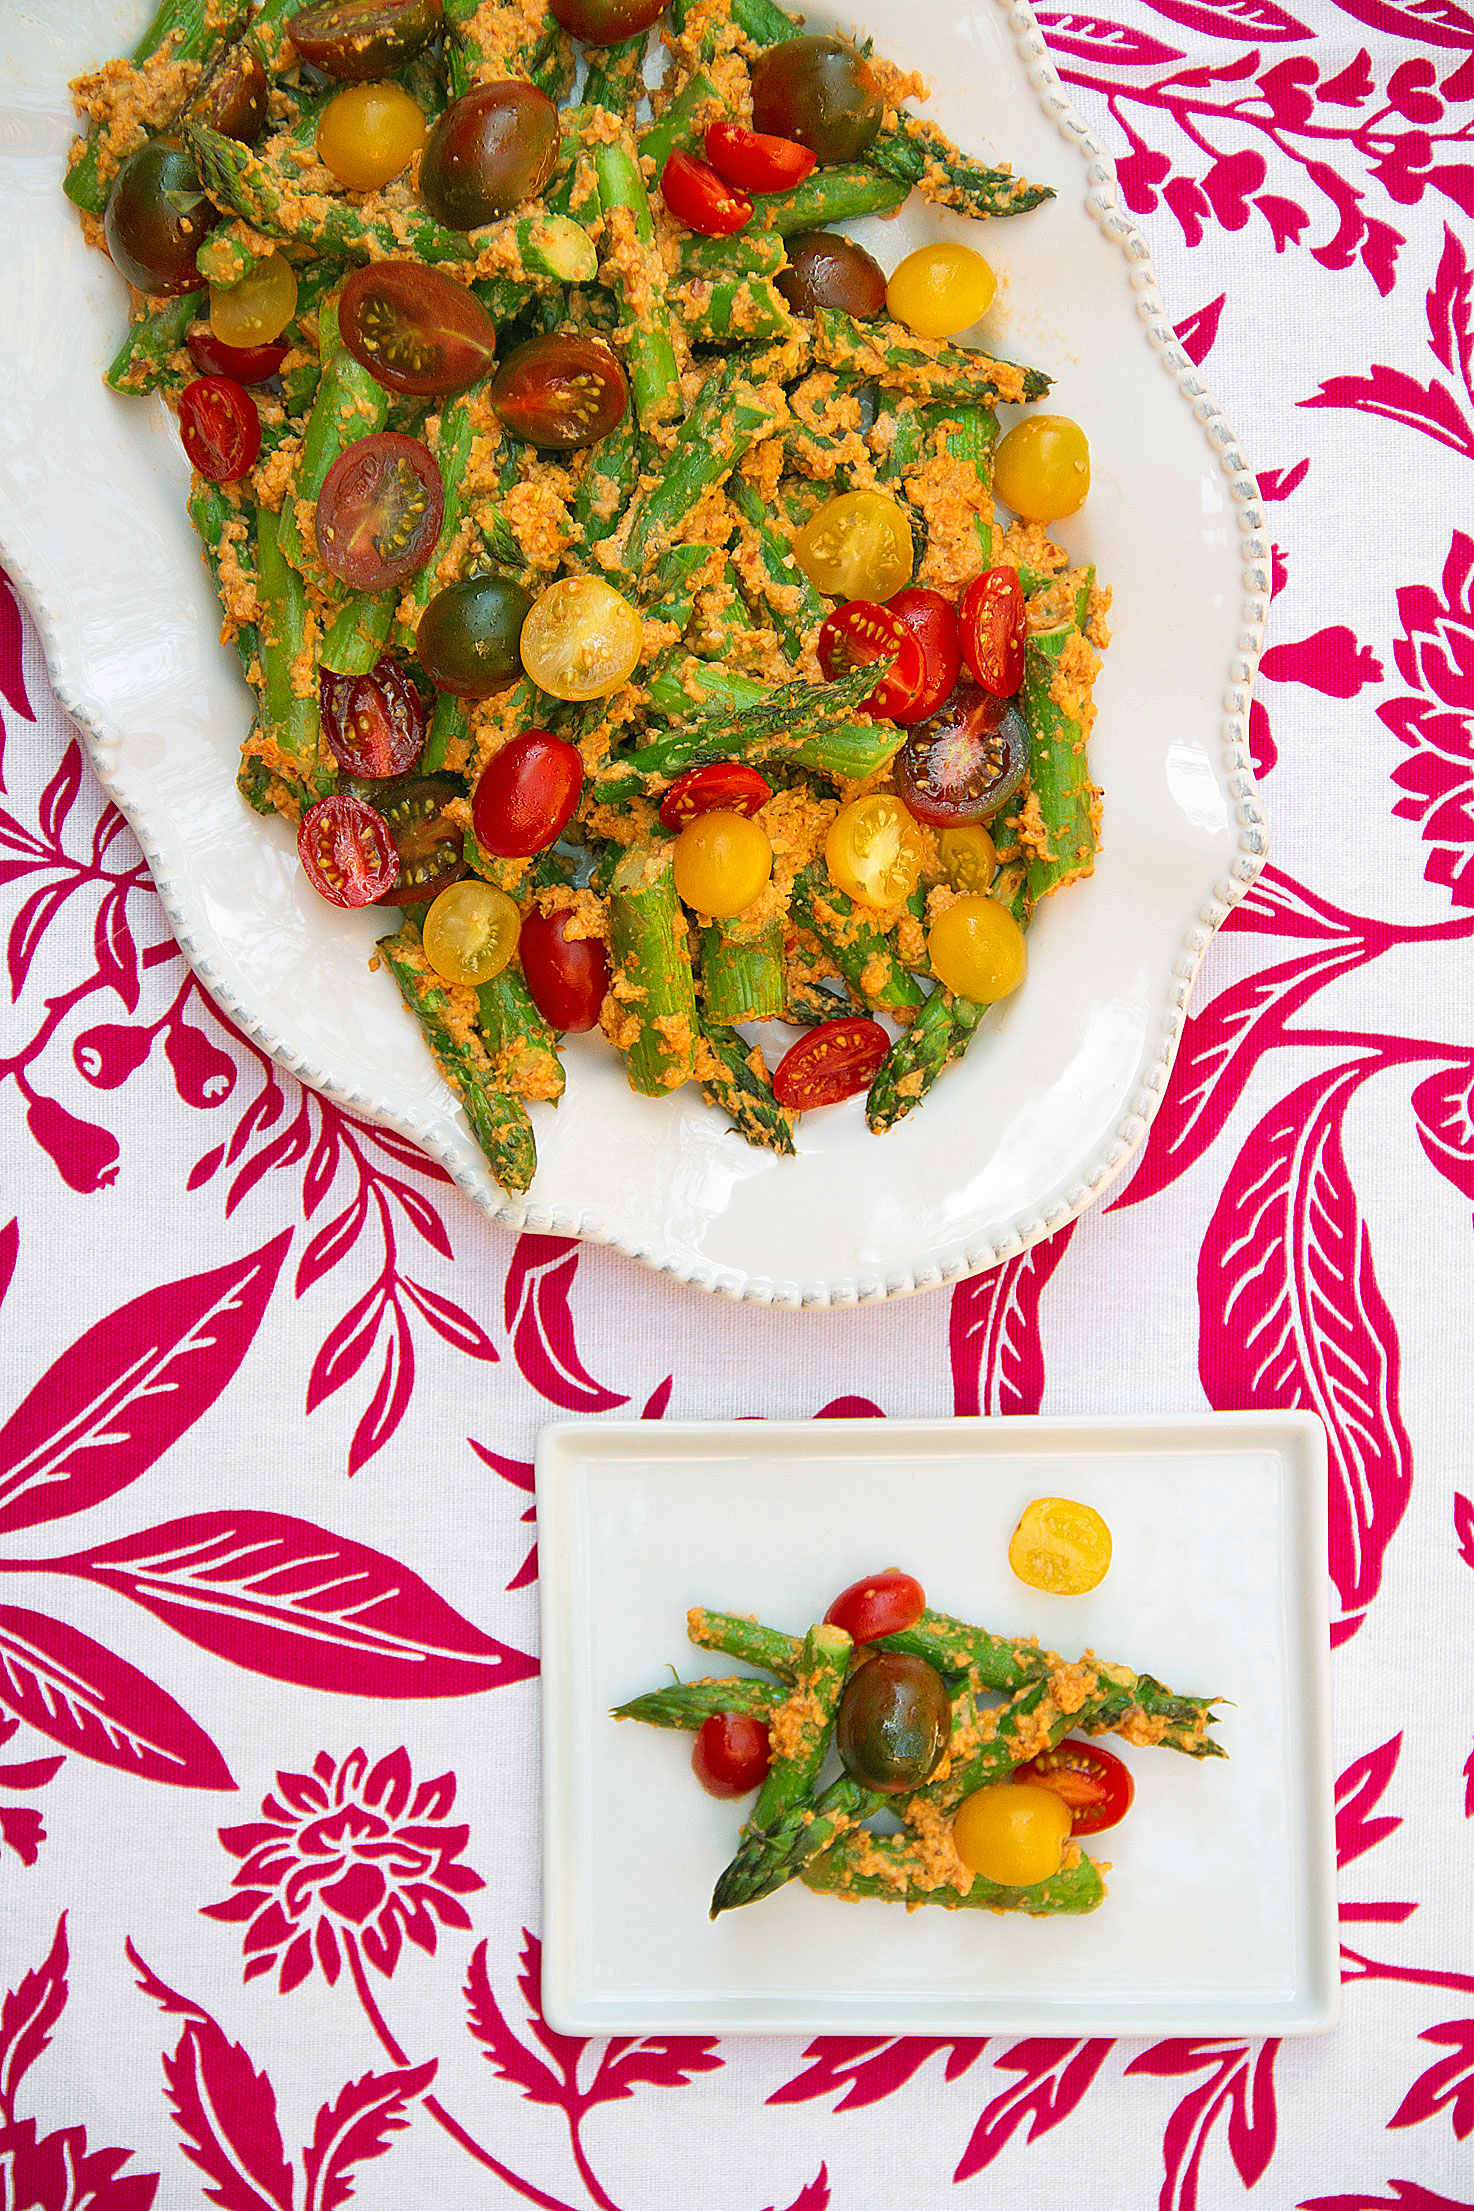 Roasted Asparagus with Tomato-Almond Pesto and Cherry Tomatoes